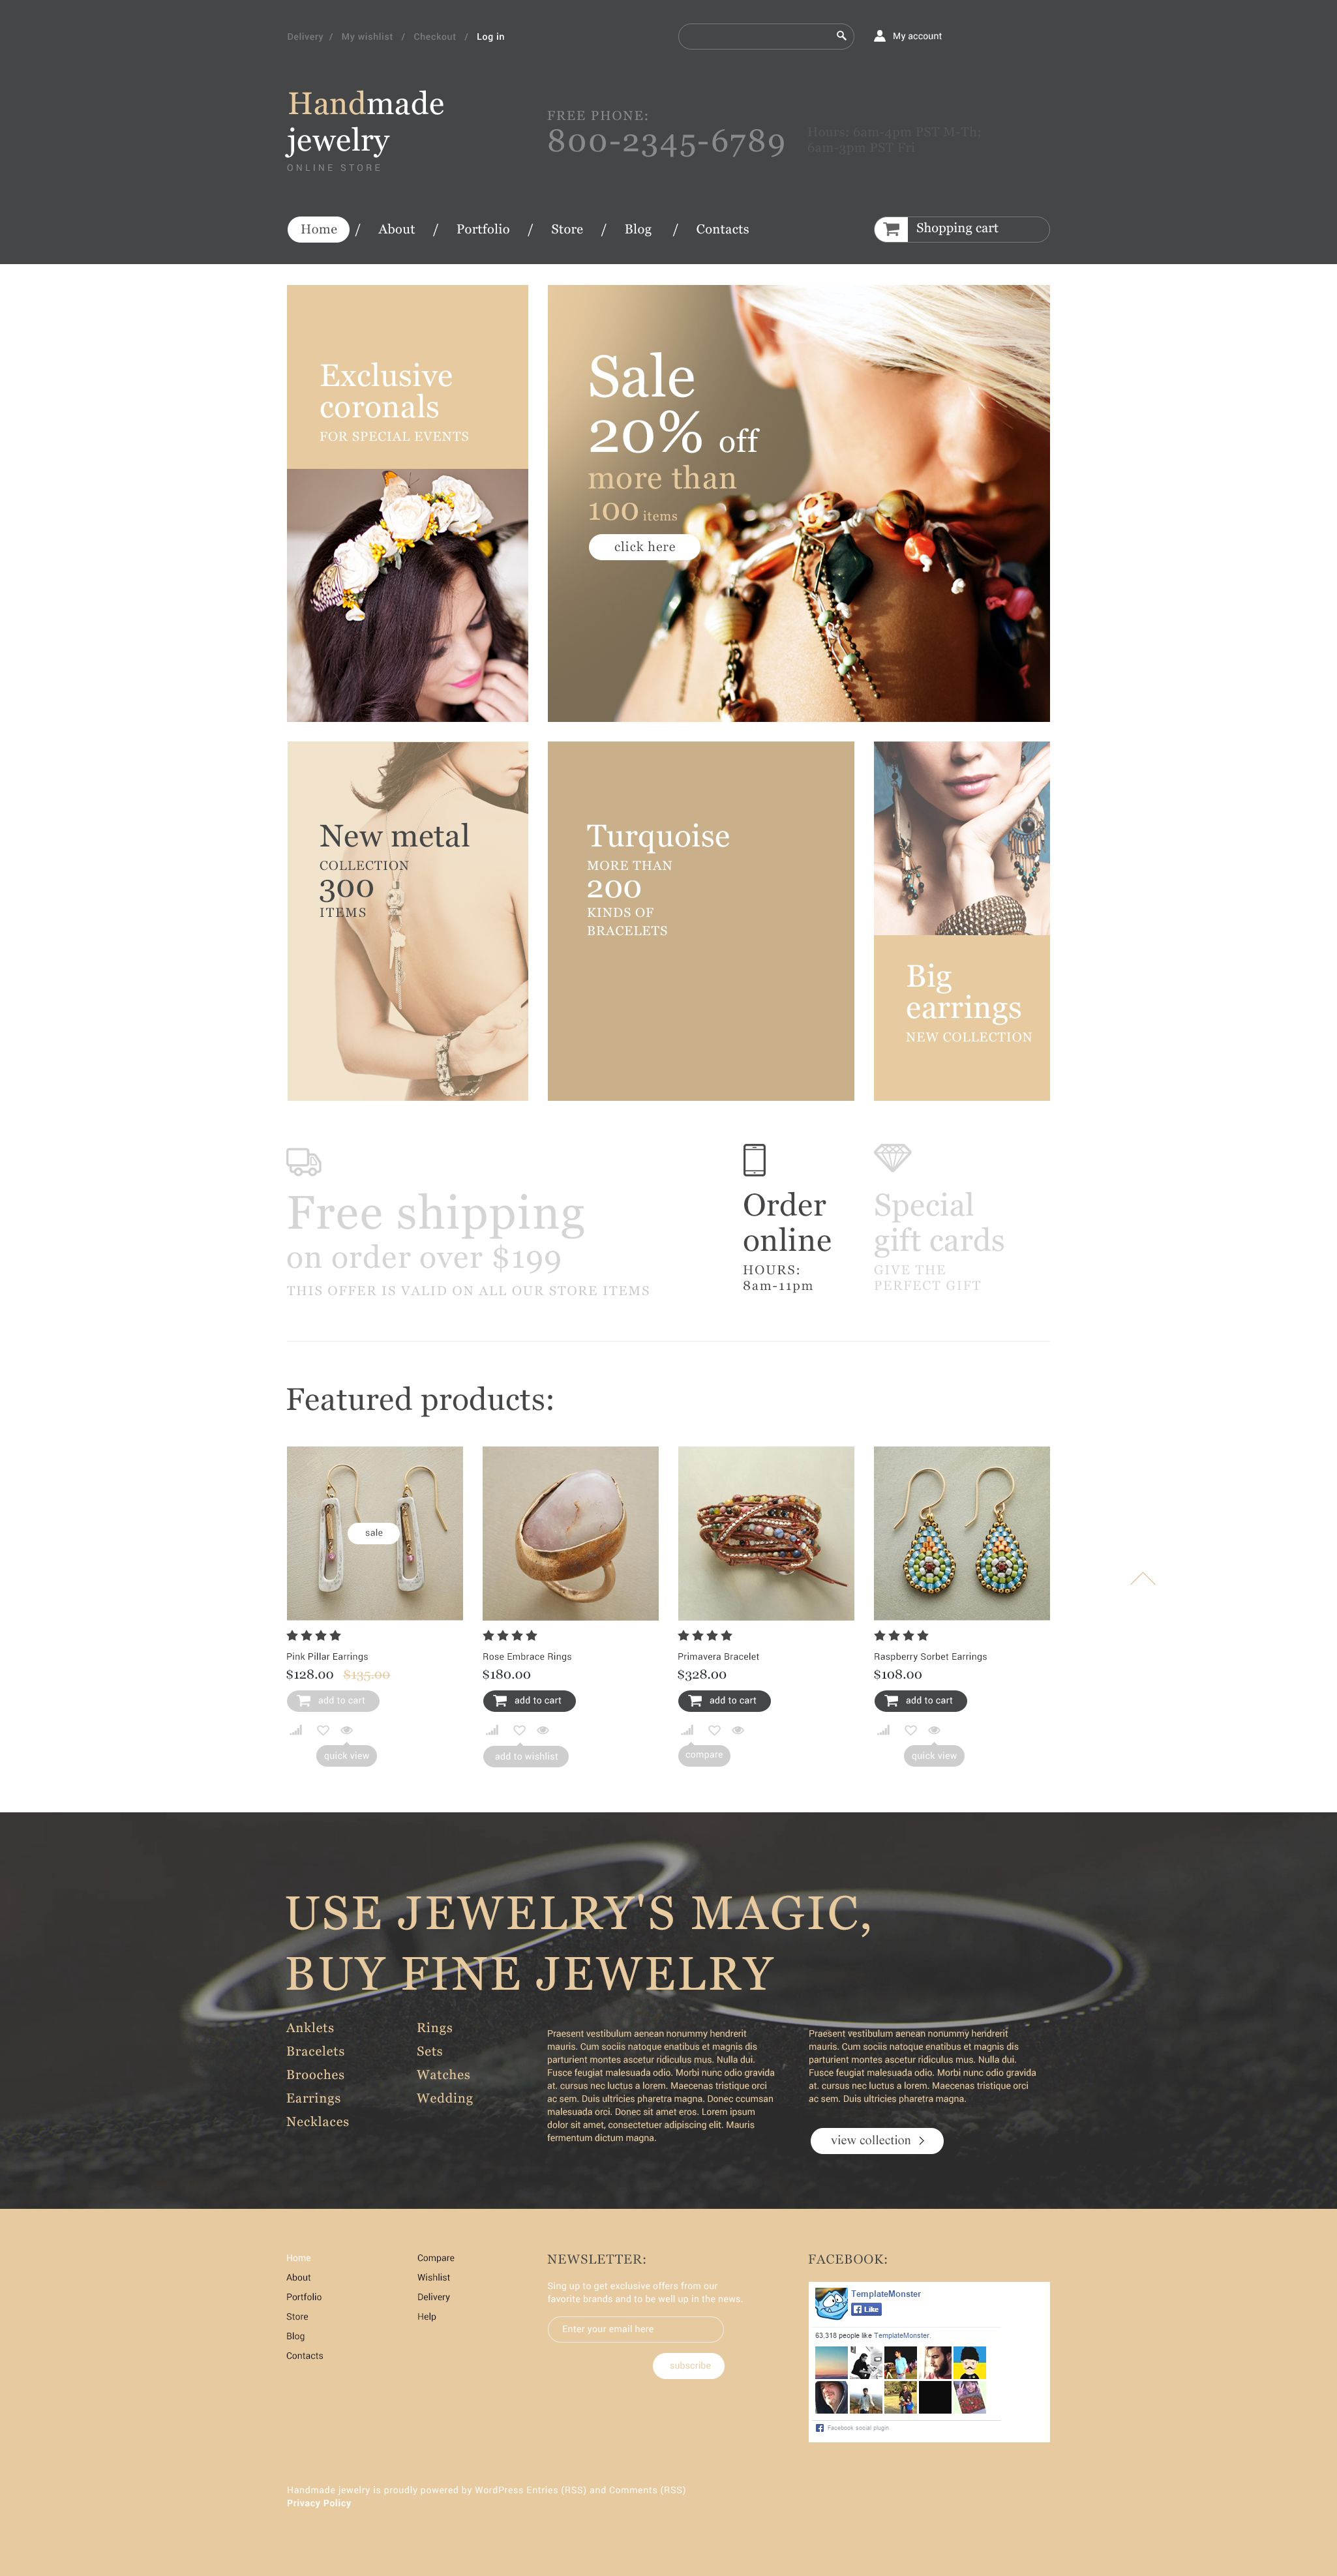 The Handmade Jewelry WooCommerce Design 53954, one of the best WooCommerce themes of its kind (wedding, most popular), also known as handmade jewelry WooCommerce template, hand WooCommerce template, made online store WooCommerce template, jewels WooCommerce template, gold WooCommerce template, silver WooCommerce template, golden ring WooCommerce template, rings WooCommerce template, watch WooCommerce template, watches store WooCommerce template, souvenir WooCommerce template, present and related with handmade jewelry, hand, made online store, jewels, gold, silver, golden ring, rings, watch, watches store, souvenir, present, etc.